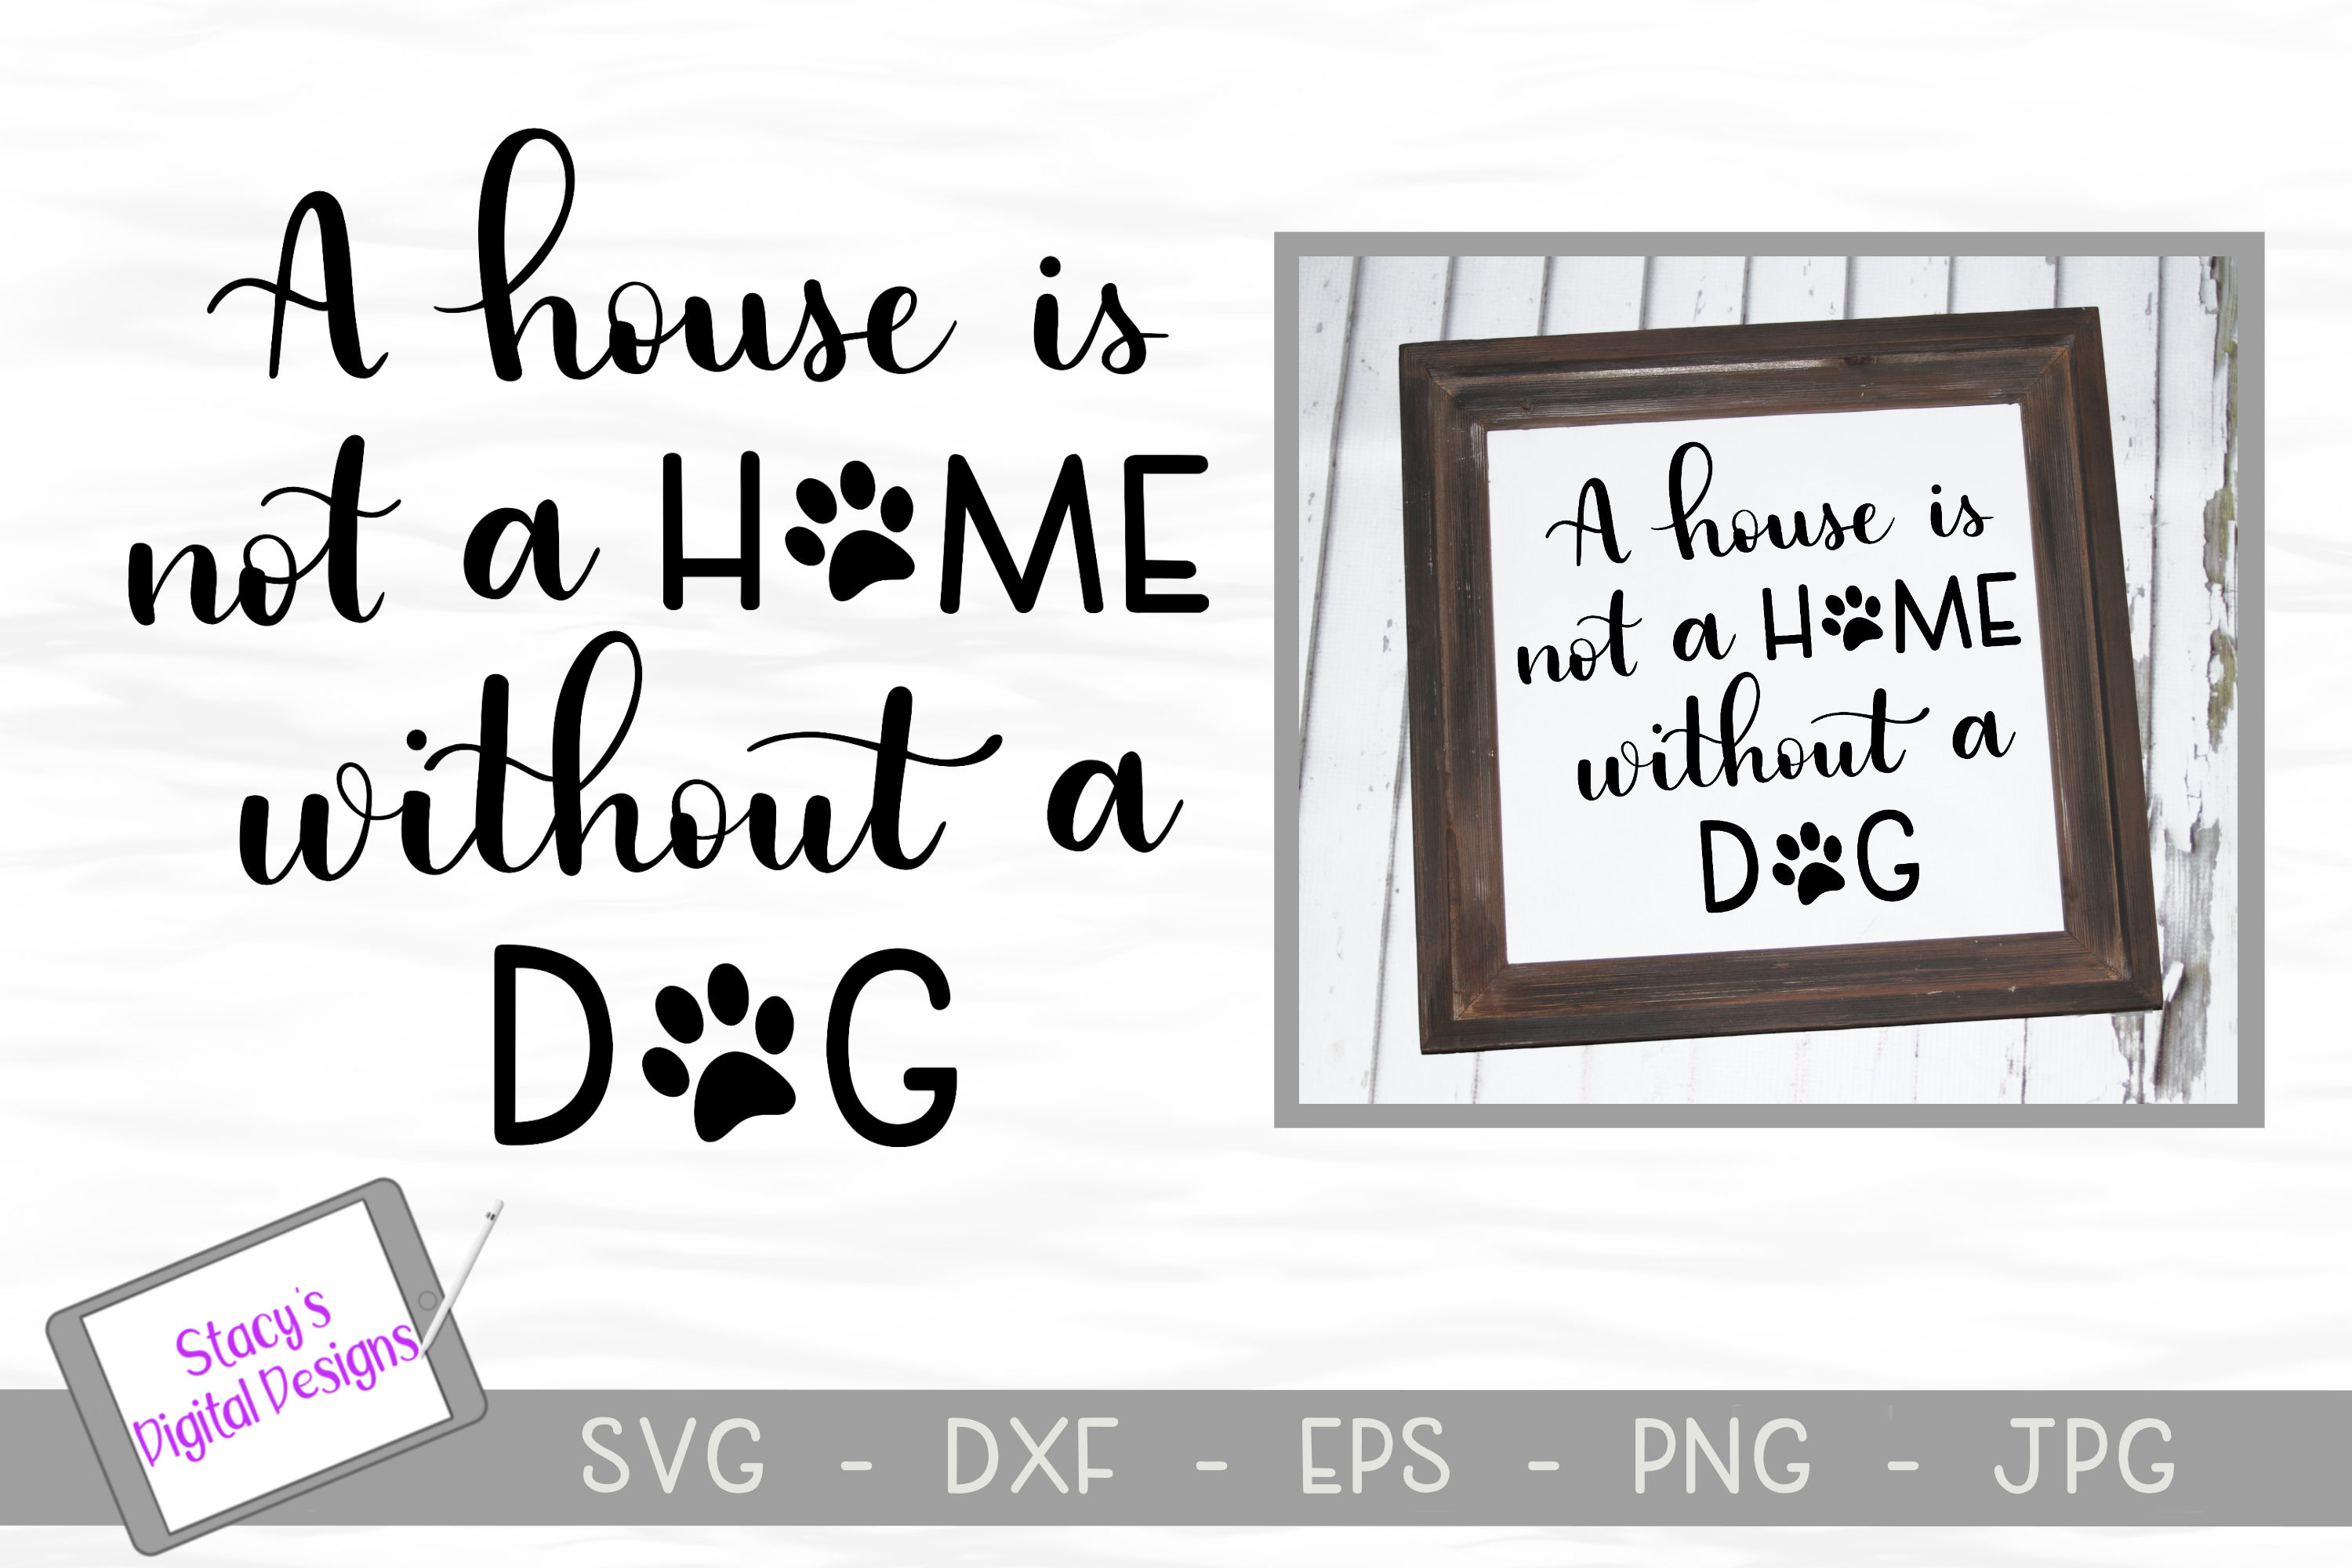 Dog SVG Bundle - includes 7 dog SVG files example image 4